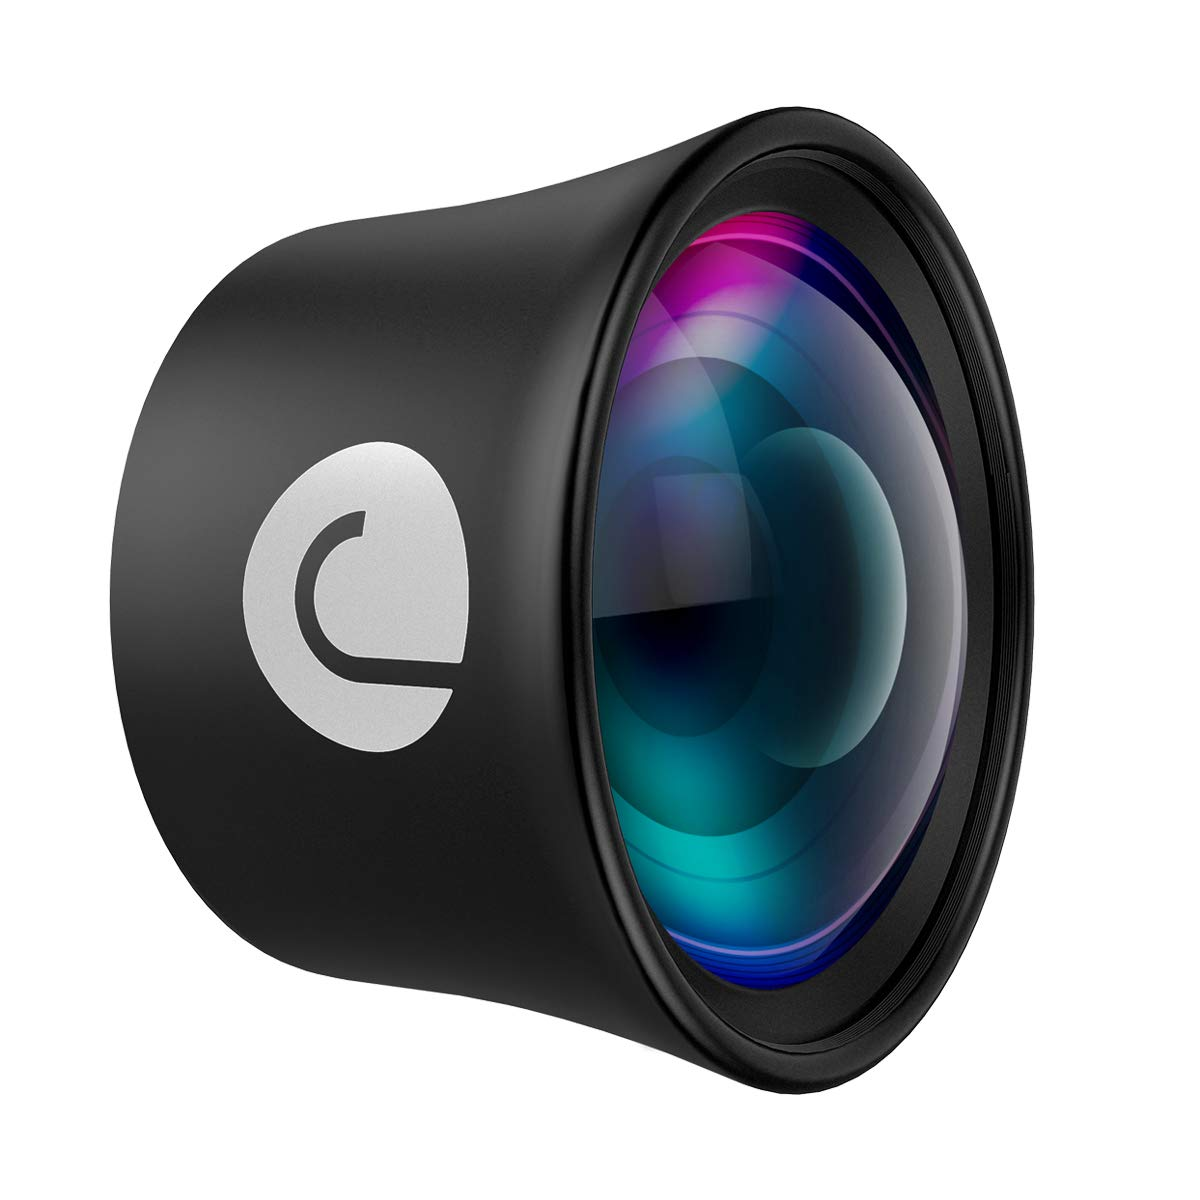 Criacr 18mm Phone Wide Angle Lens, ONLY for iPhone X Phone Camera Lens (Phone Case Included) by Criacr